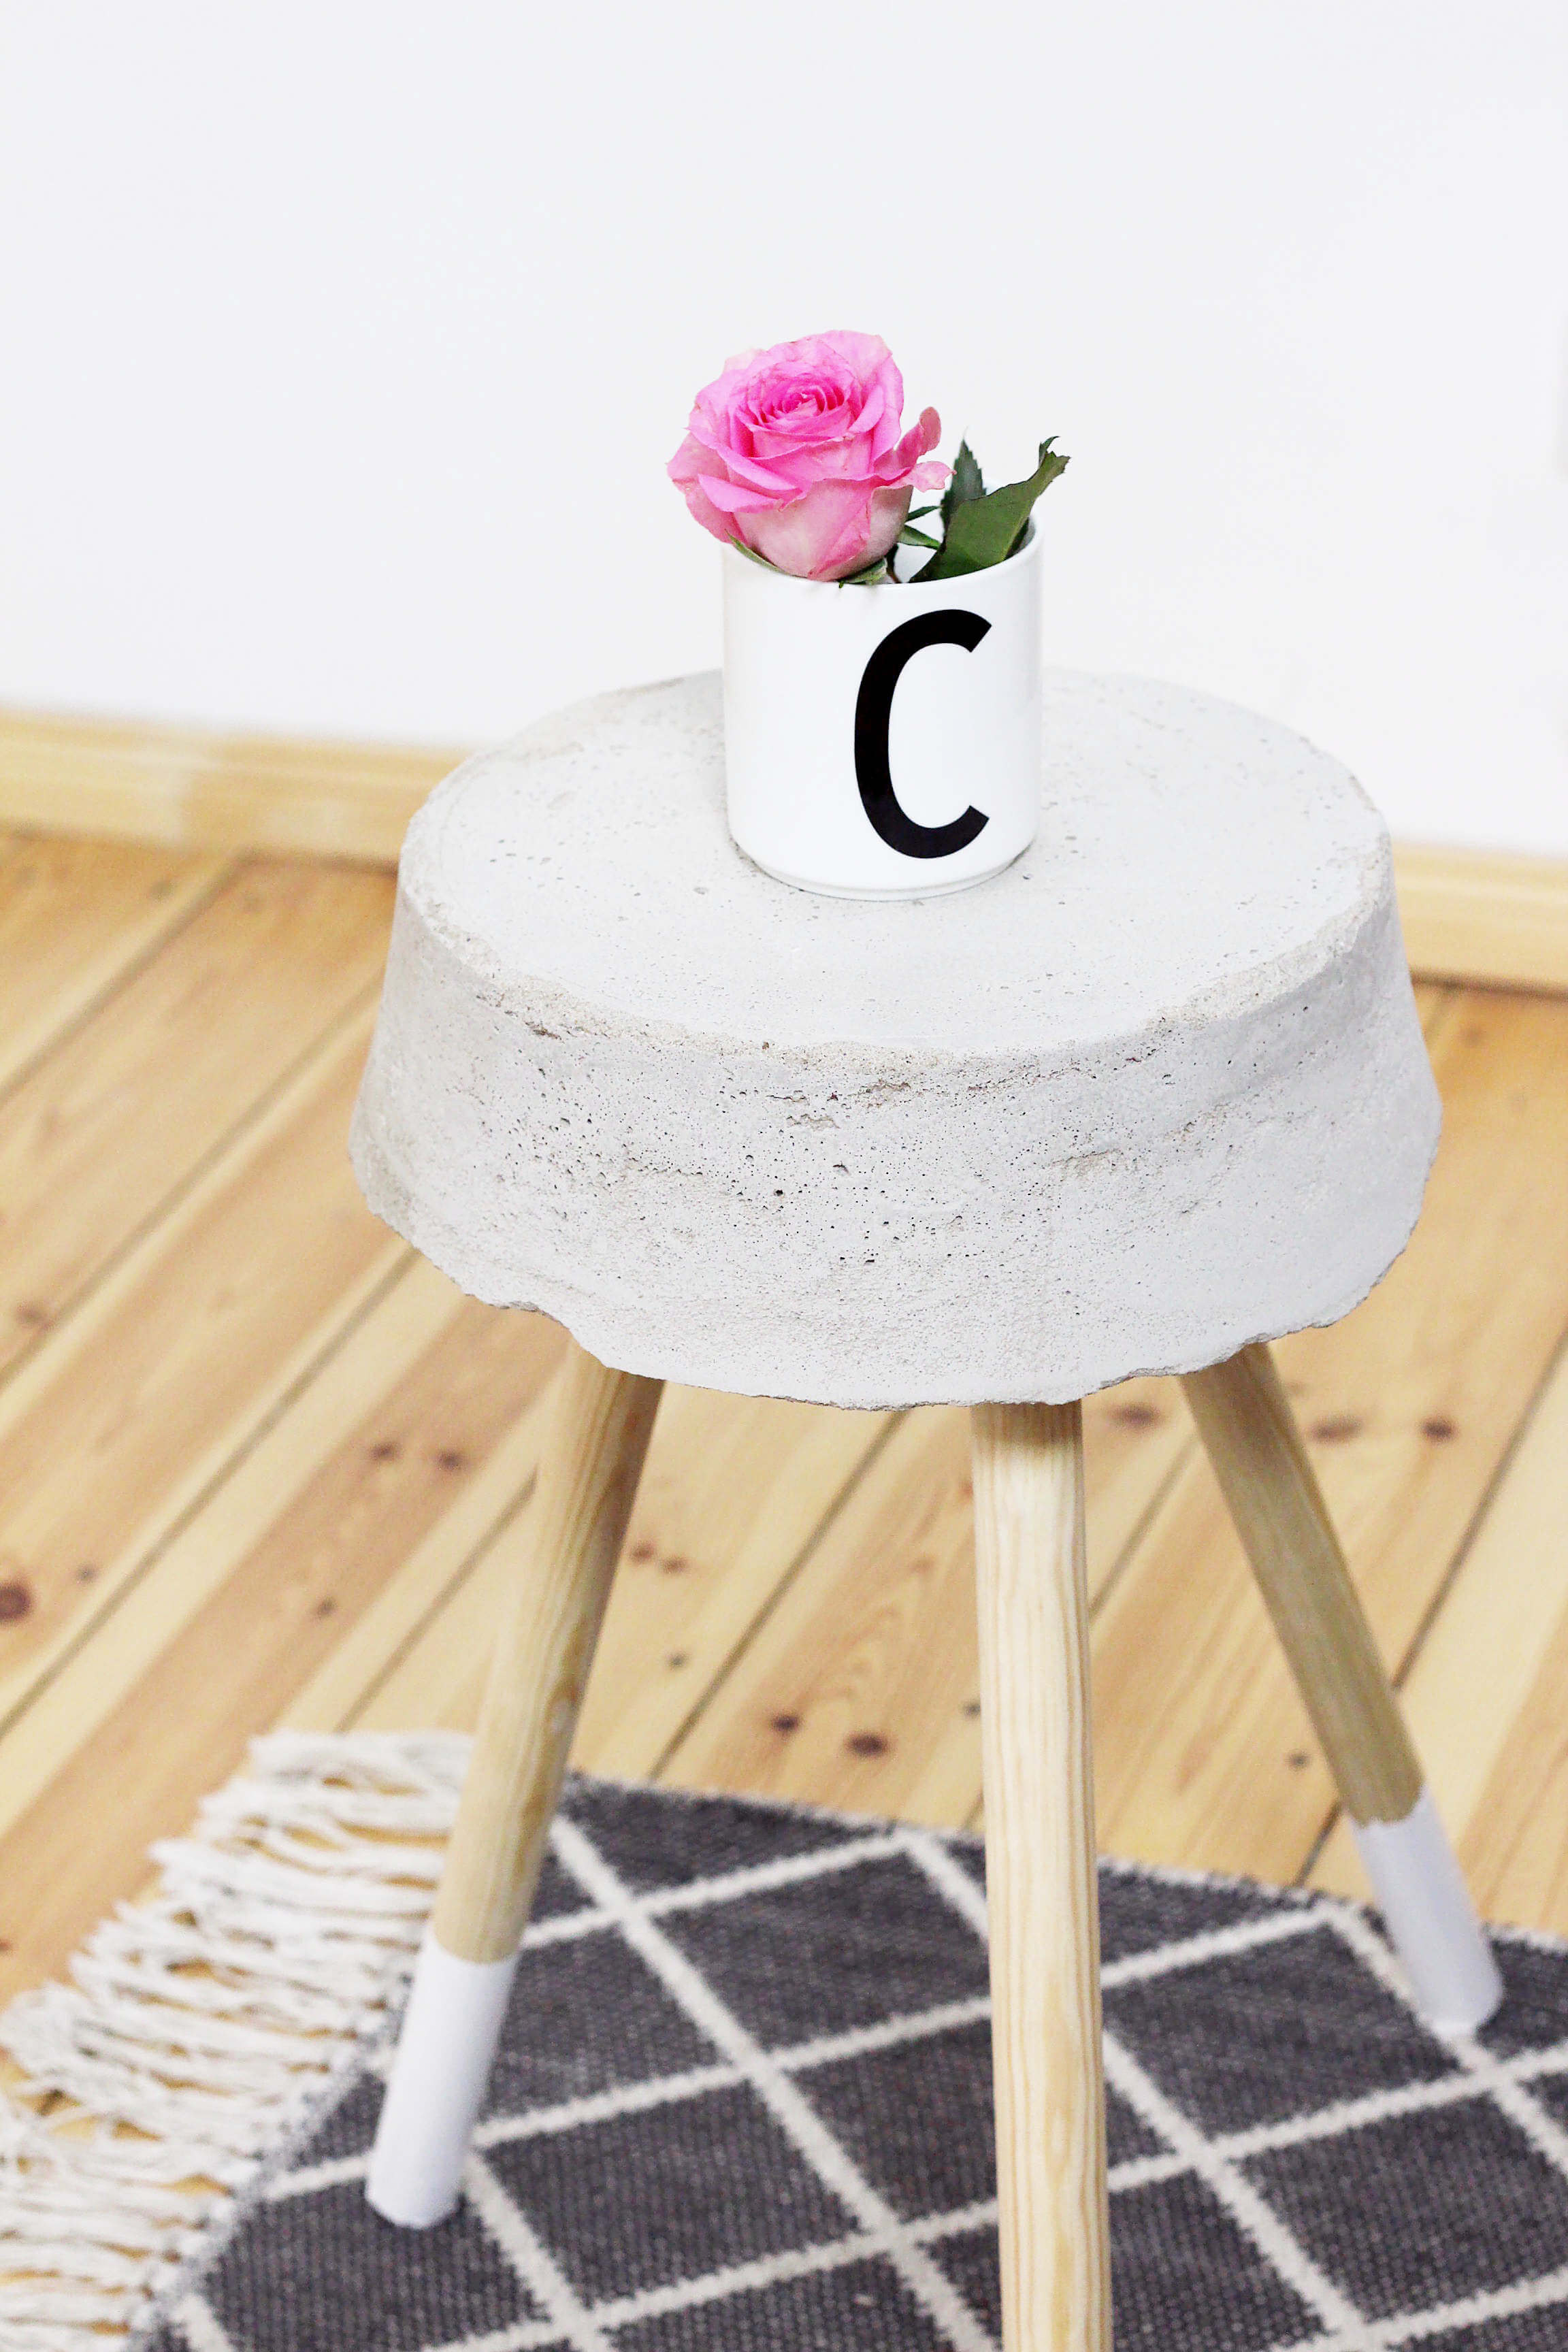 diy-beton-hocker-zement-moebel-diy-blog-berlin